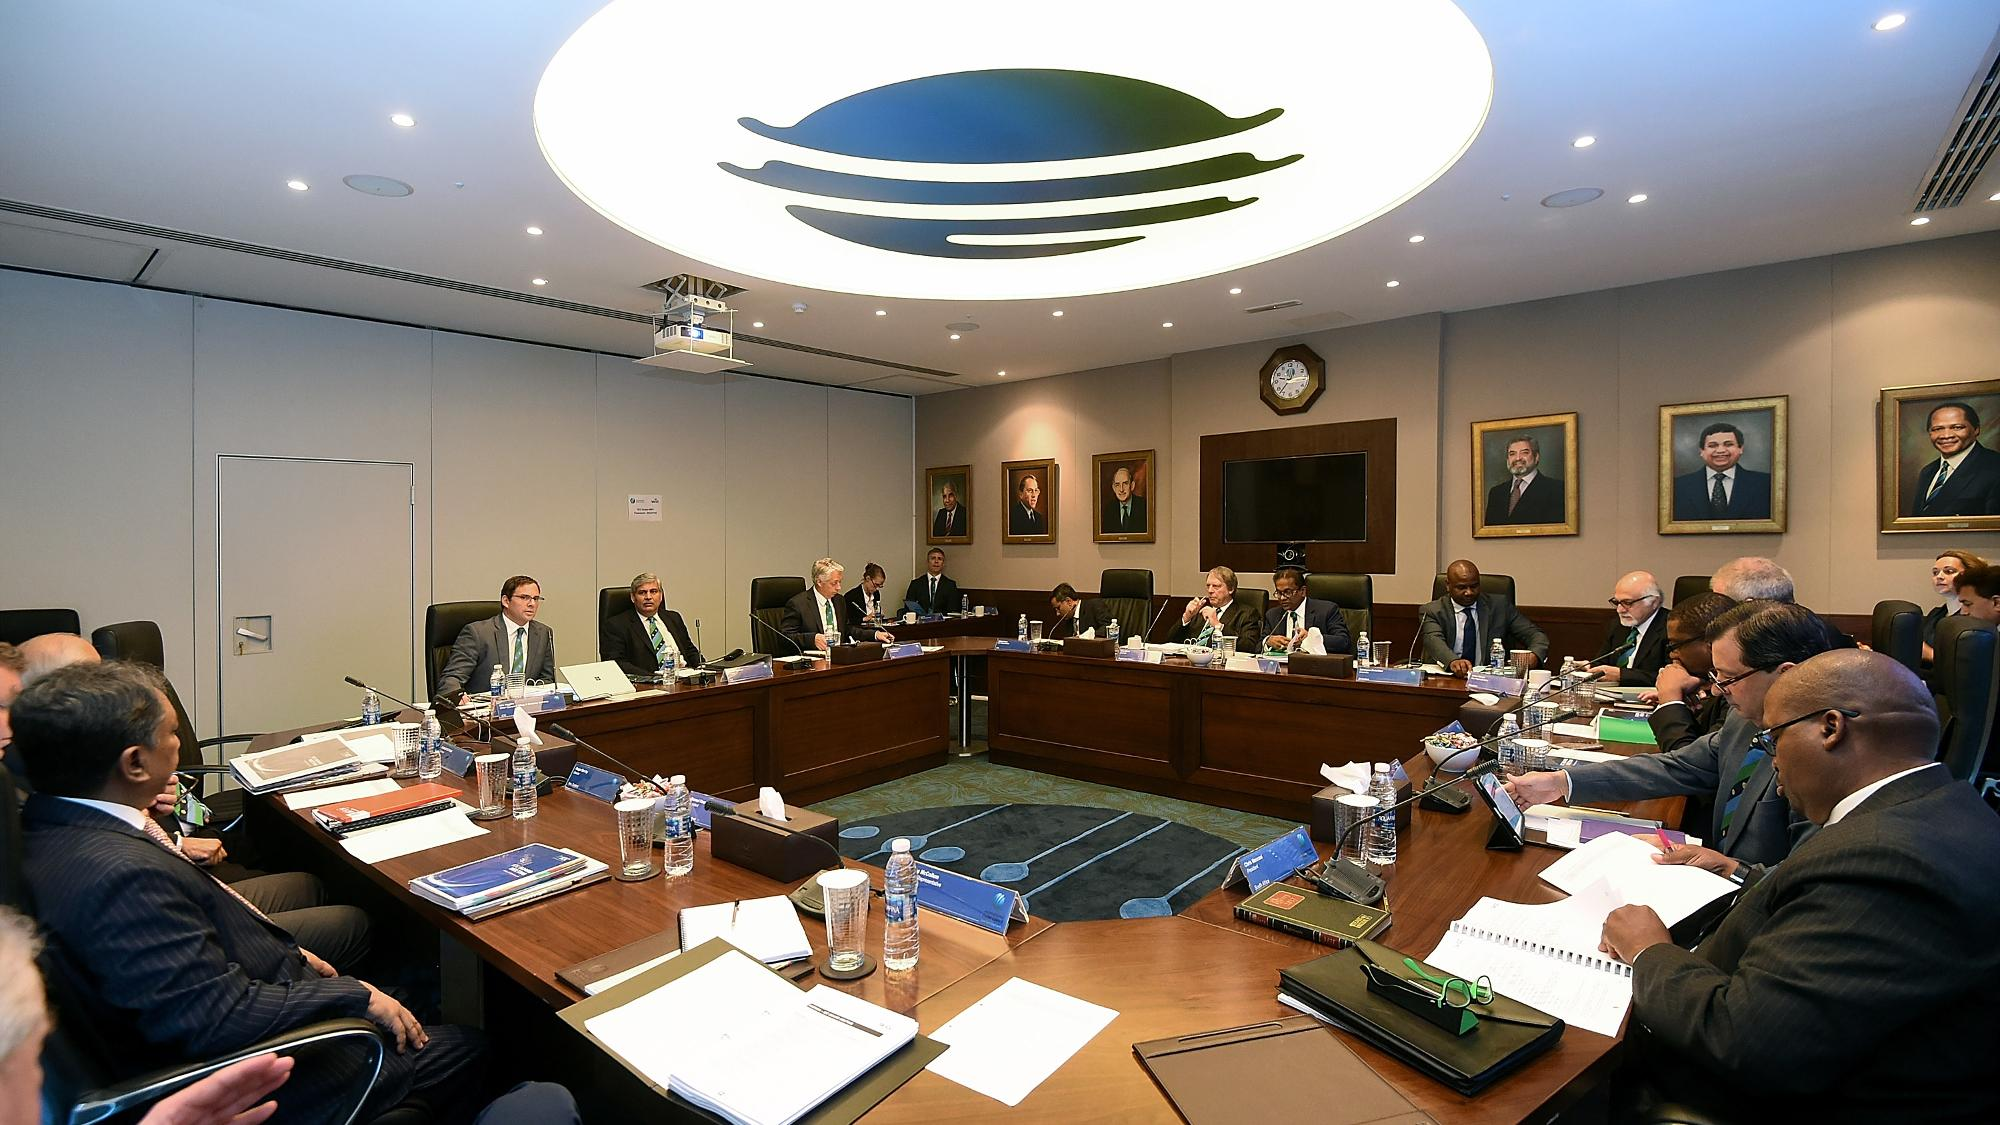 The ICC meeting